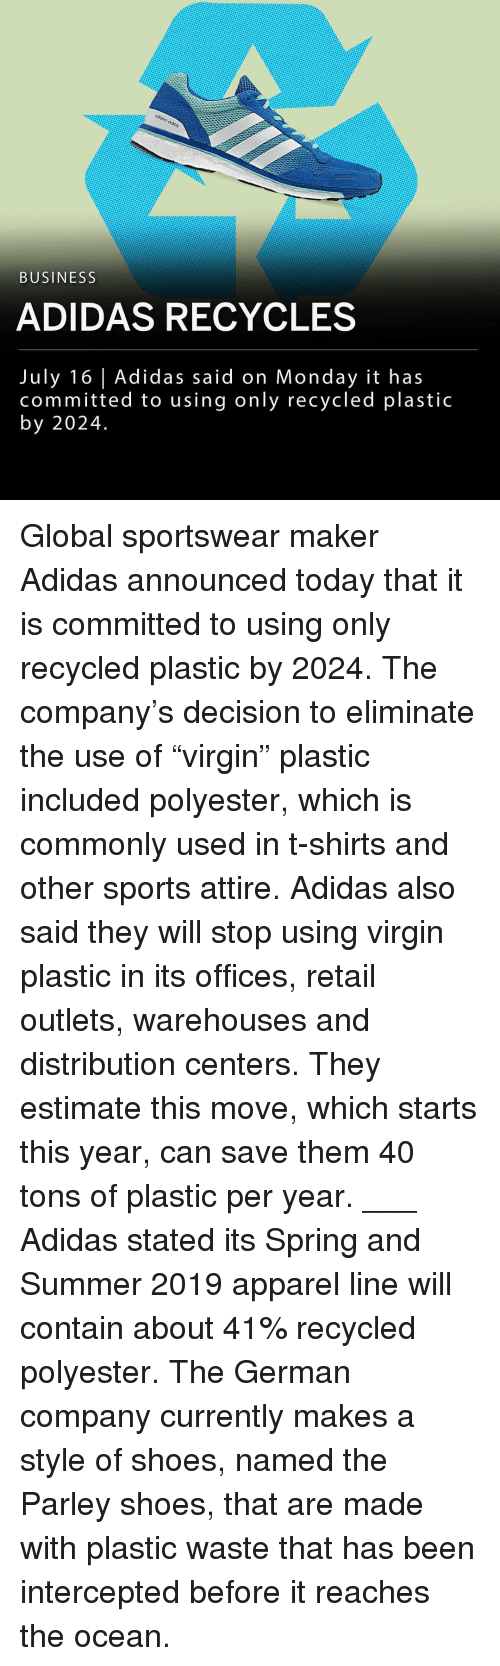 """Apparel: BUSINESS  ADIDAS RECYCLES  July 16 Adidas said on Monday it has  committed to using only recycled plastic  by 2024. Global sportswear maker Adidas announced today that it is committed to using only recycled plastic by 2024. The company's decision to eliminate the use of """"virgin"""" plastic included polyester, which is commonly used in t-shirts and other sports attire. Adidas also said they will stop using virgin plastic in its offices, retail outlets, warehouses and distribution centers. They estimate this move, which starts this year, can save them 40 tons of plastic per year. ___ Adidas stated its Spring and Summer 2019 apparel line will contain about 41% recycled polyester. The German company currently makes a style of shoes, named the Parley shoes, that are made with plastic waste that has been intercepted before it reaches the ocean."""